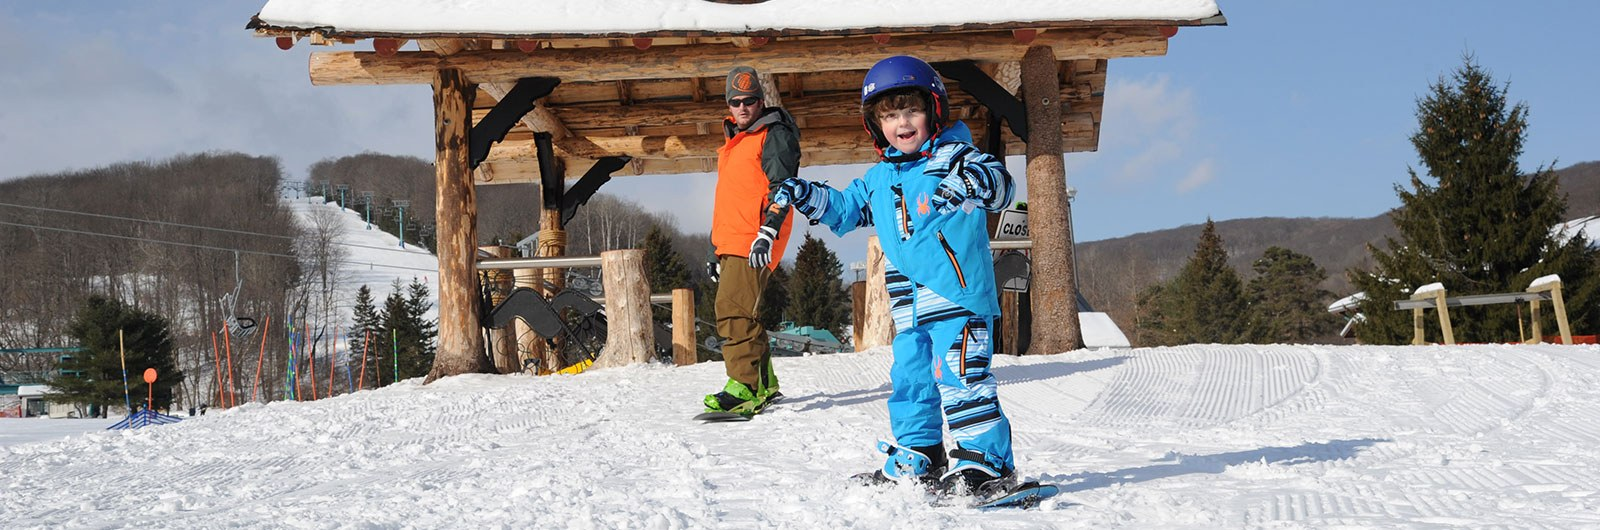 Child learning to snowboard